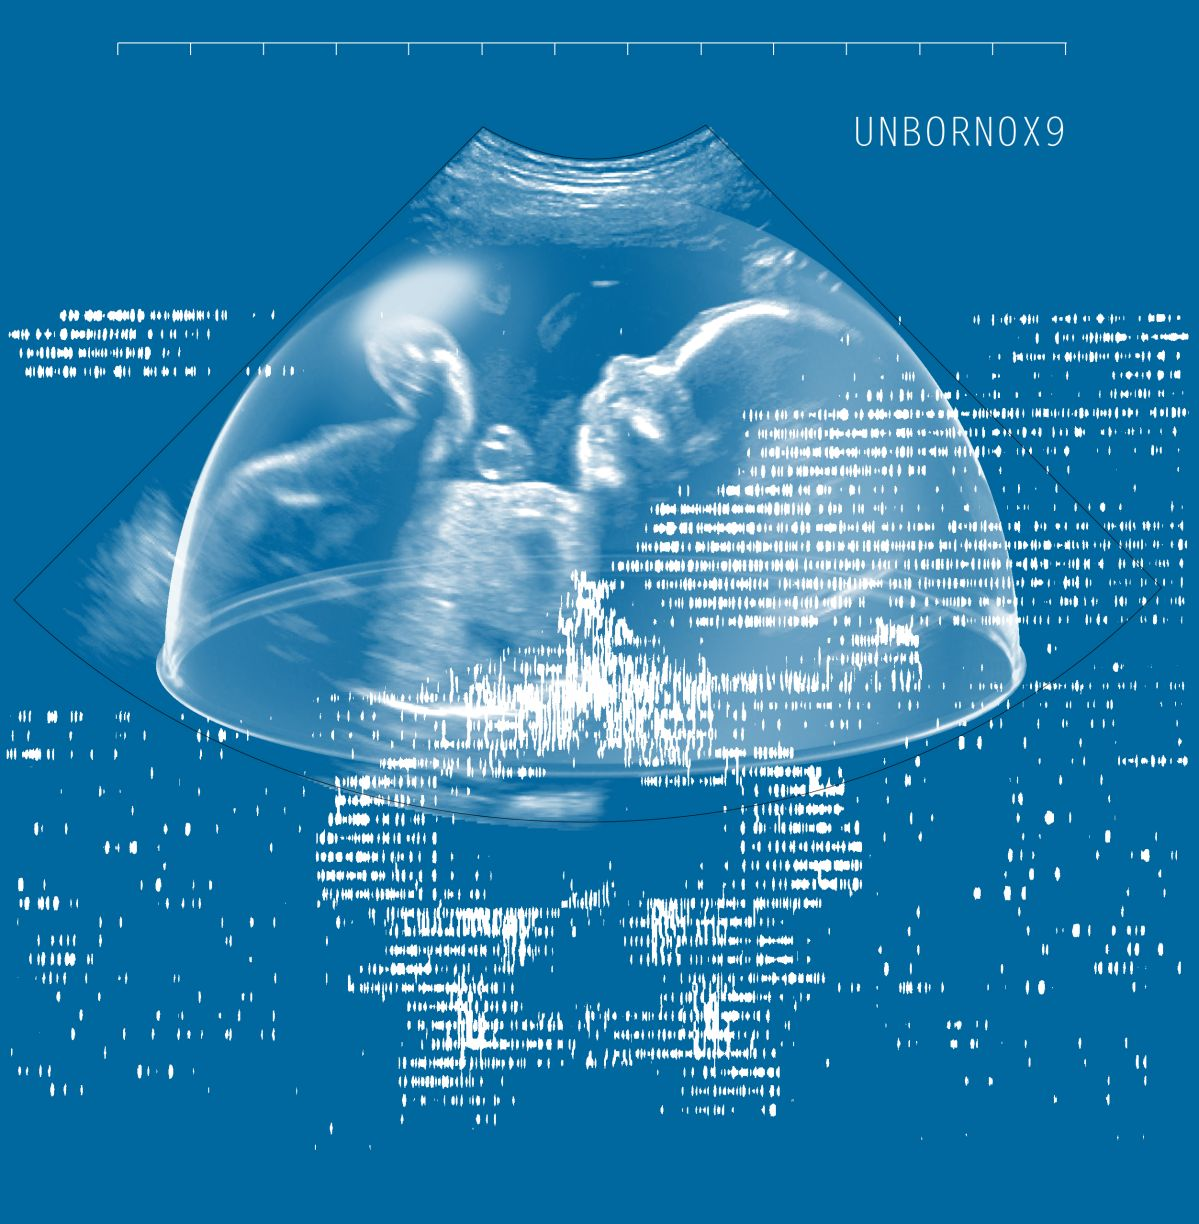 Future Baby Production - Unborn0x9, 2020 © Future Baby Production